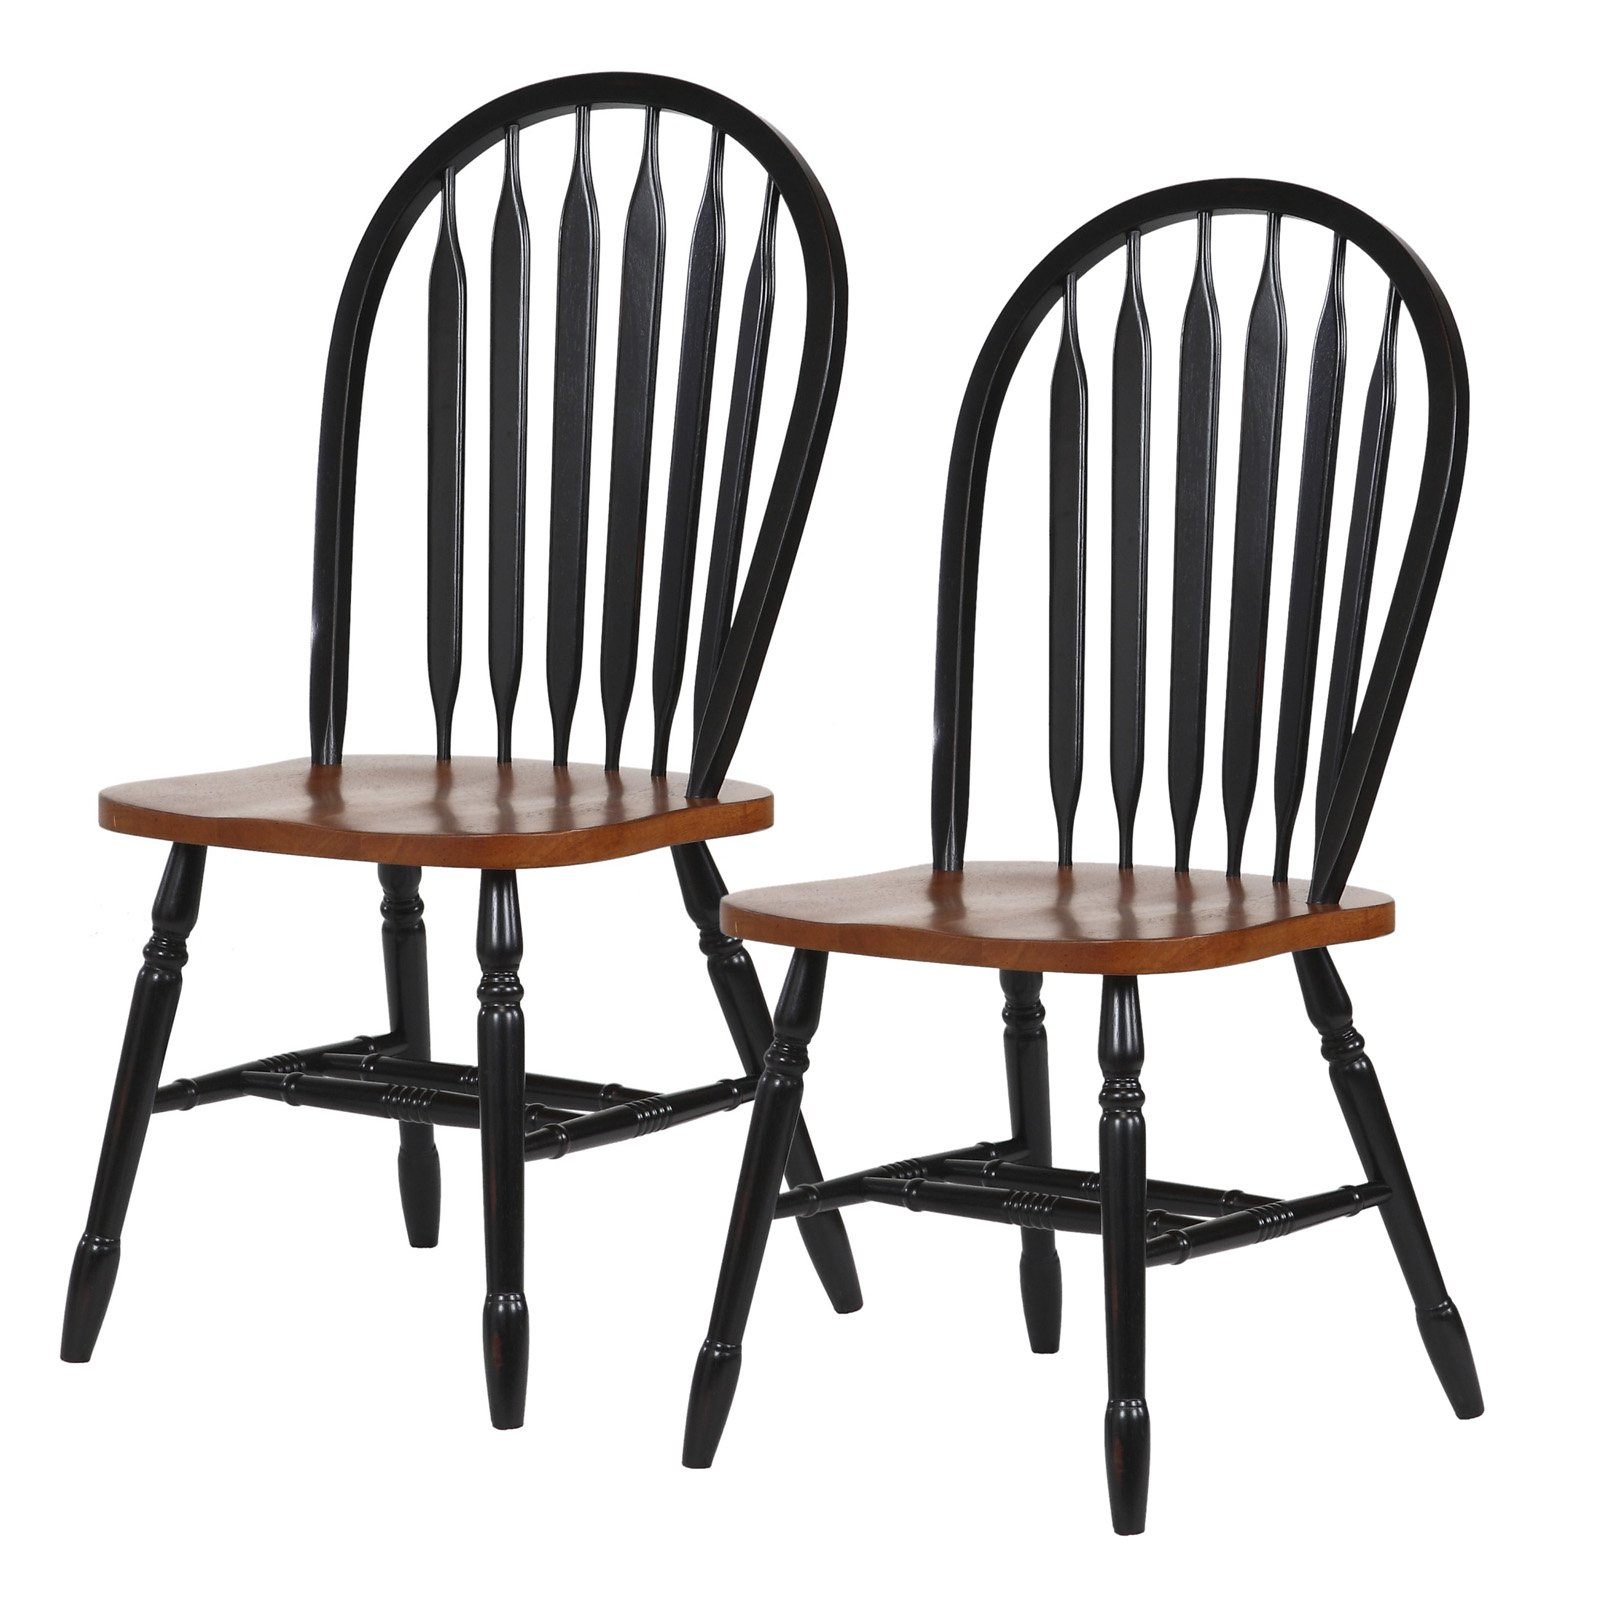 Sunset Trading Arrowback RTA Dining Chair - Set of 2